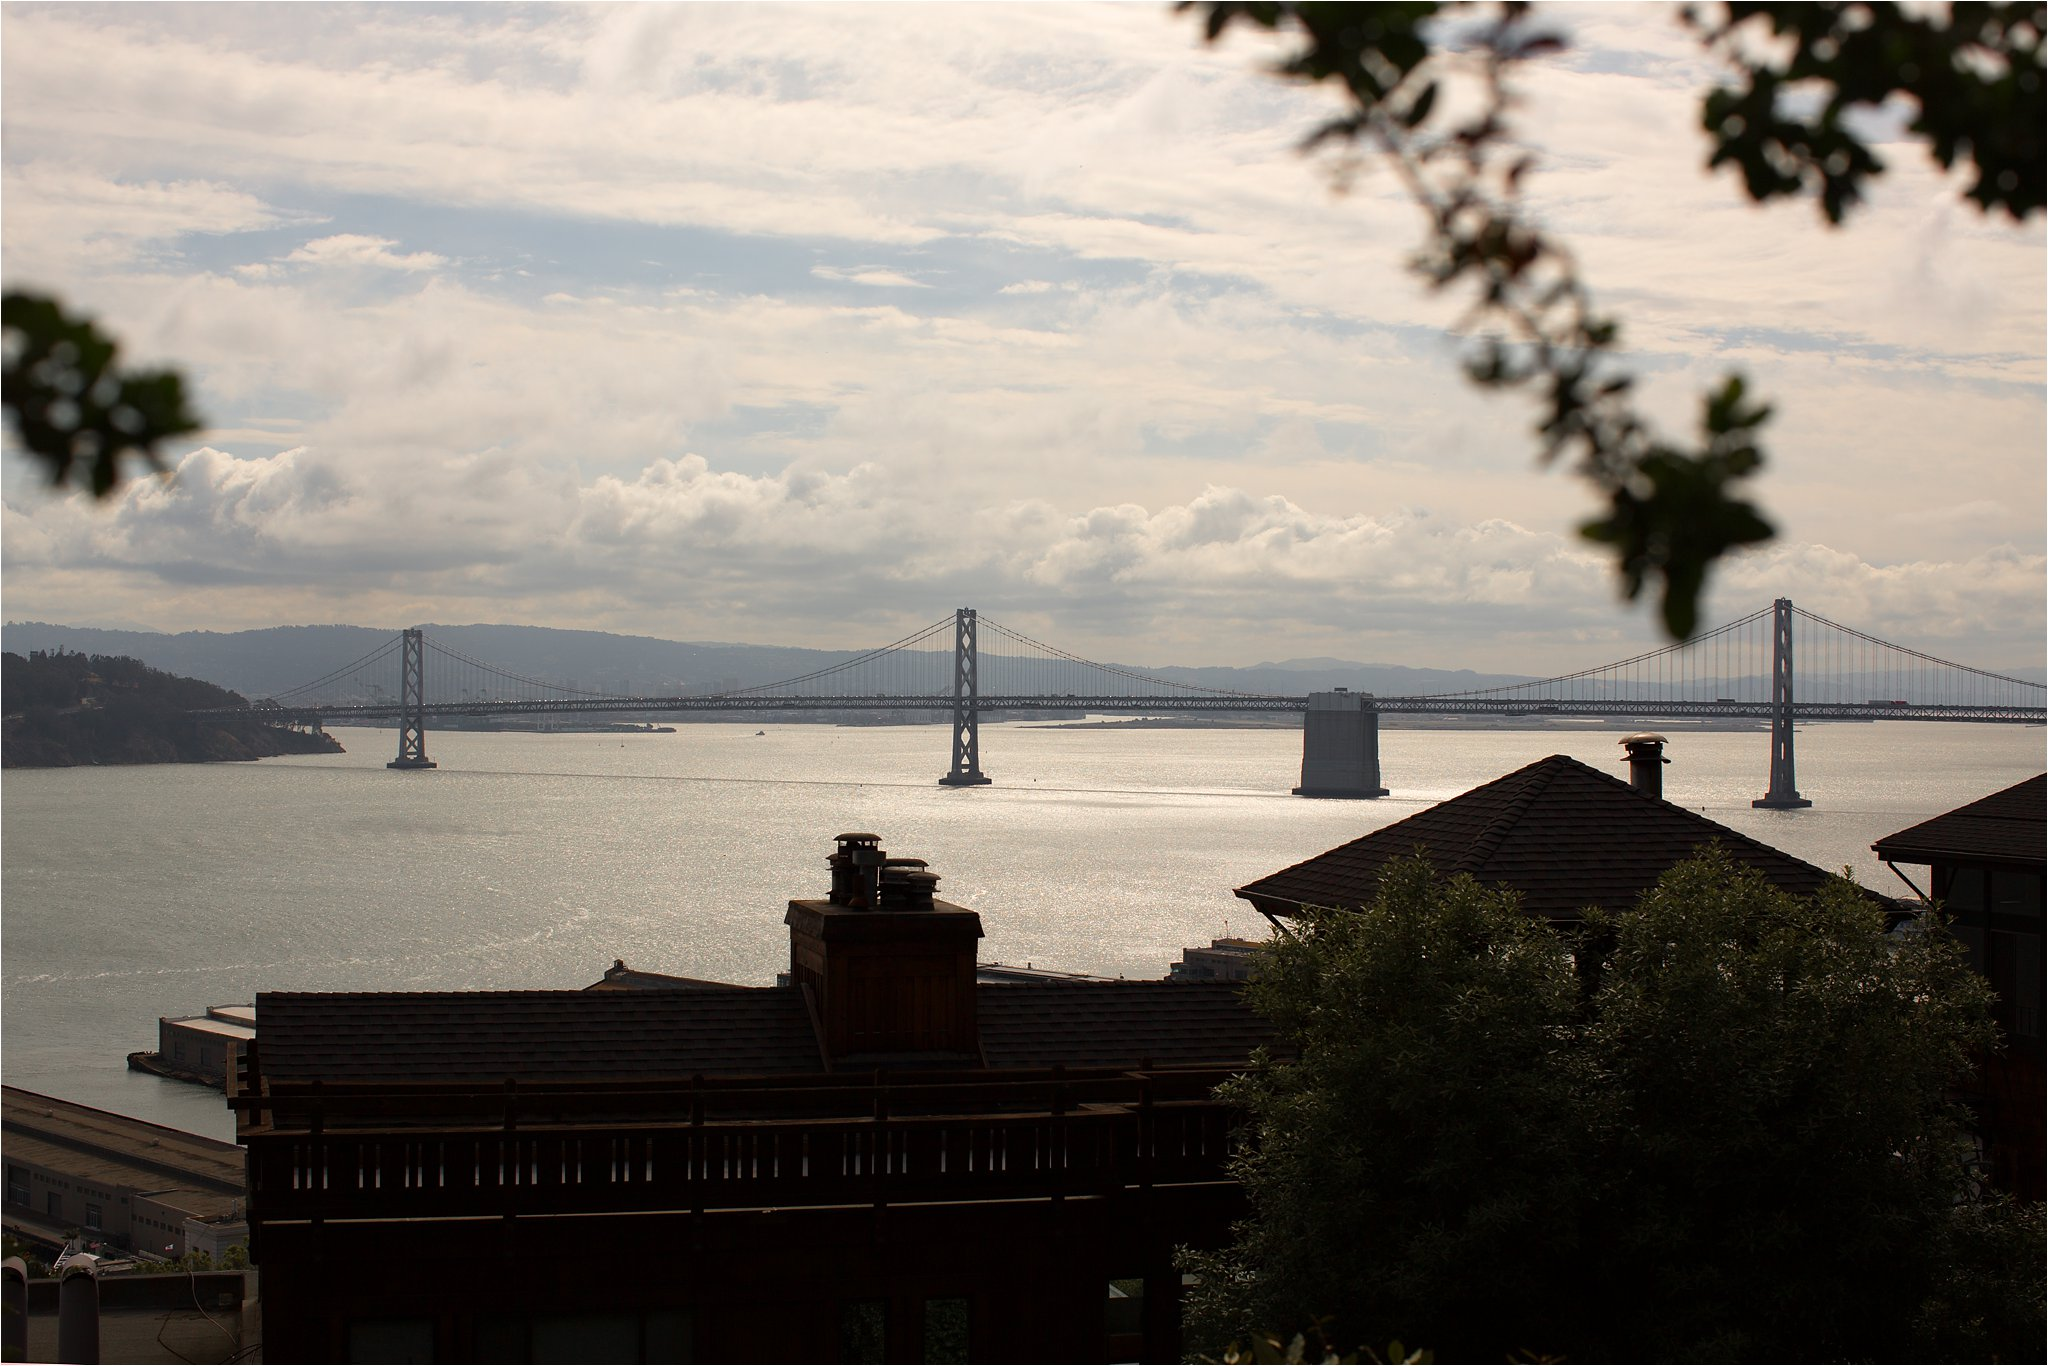 Sunset View of the San Francisco Bay Bridge from Telegraph Hill